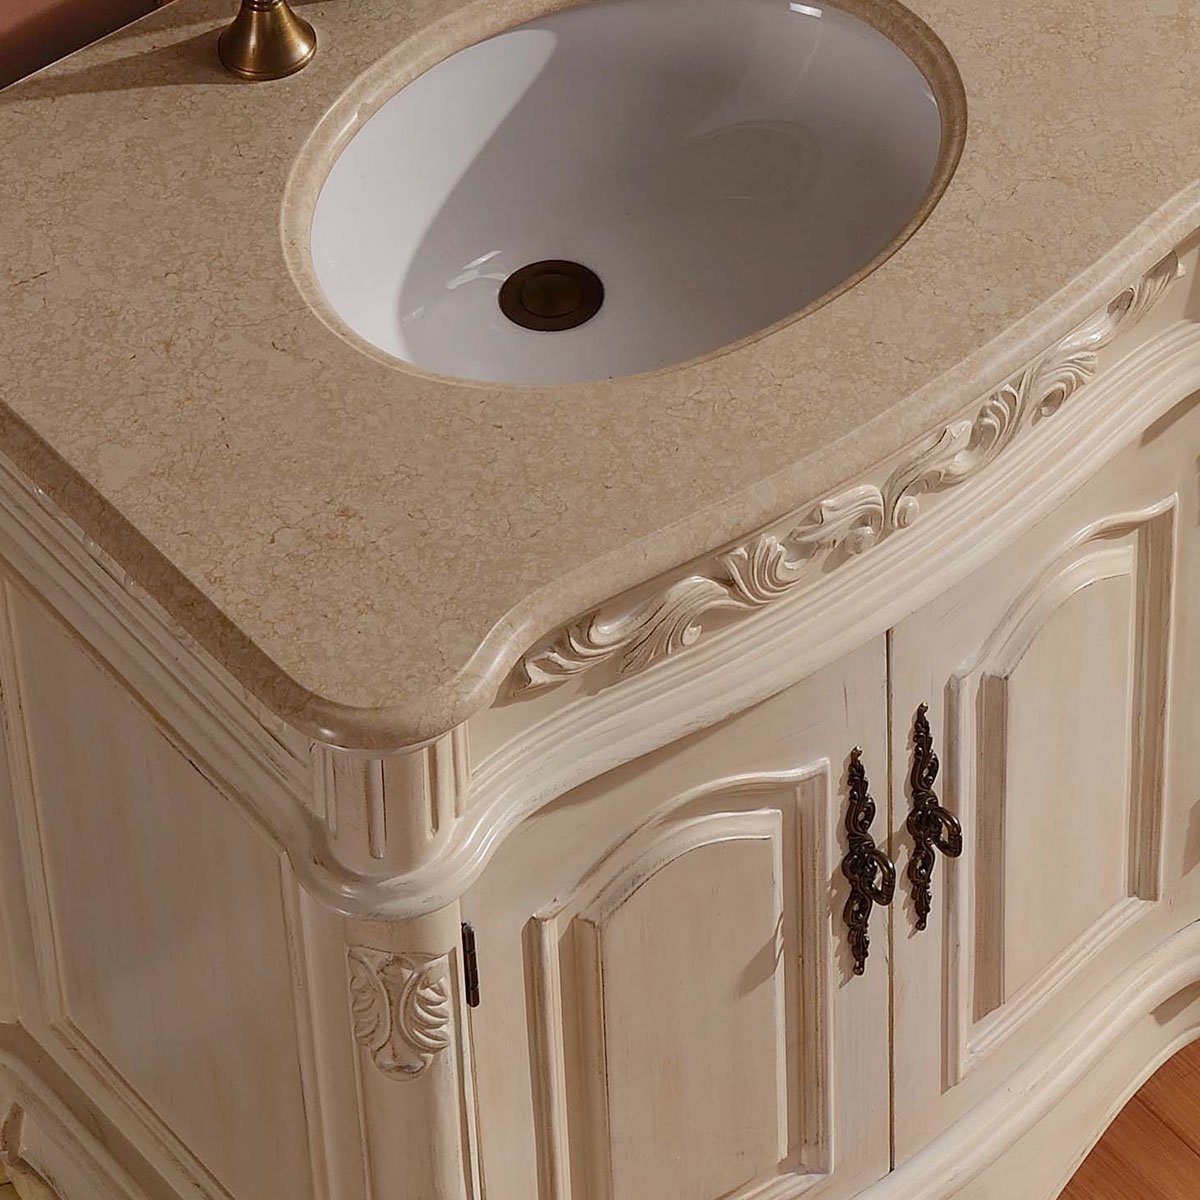 Silkroad Exclusive Countertop Marble Stone Double Sink Bathroom Vanity with Cabinet, 72-Inch by Silkroad Exclusive (Image #5)